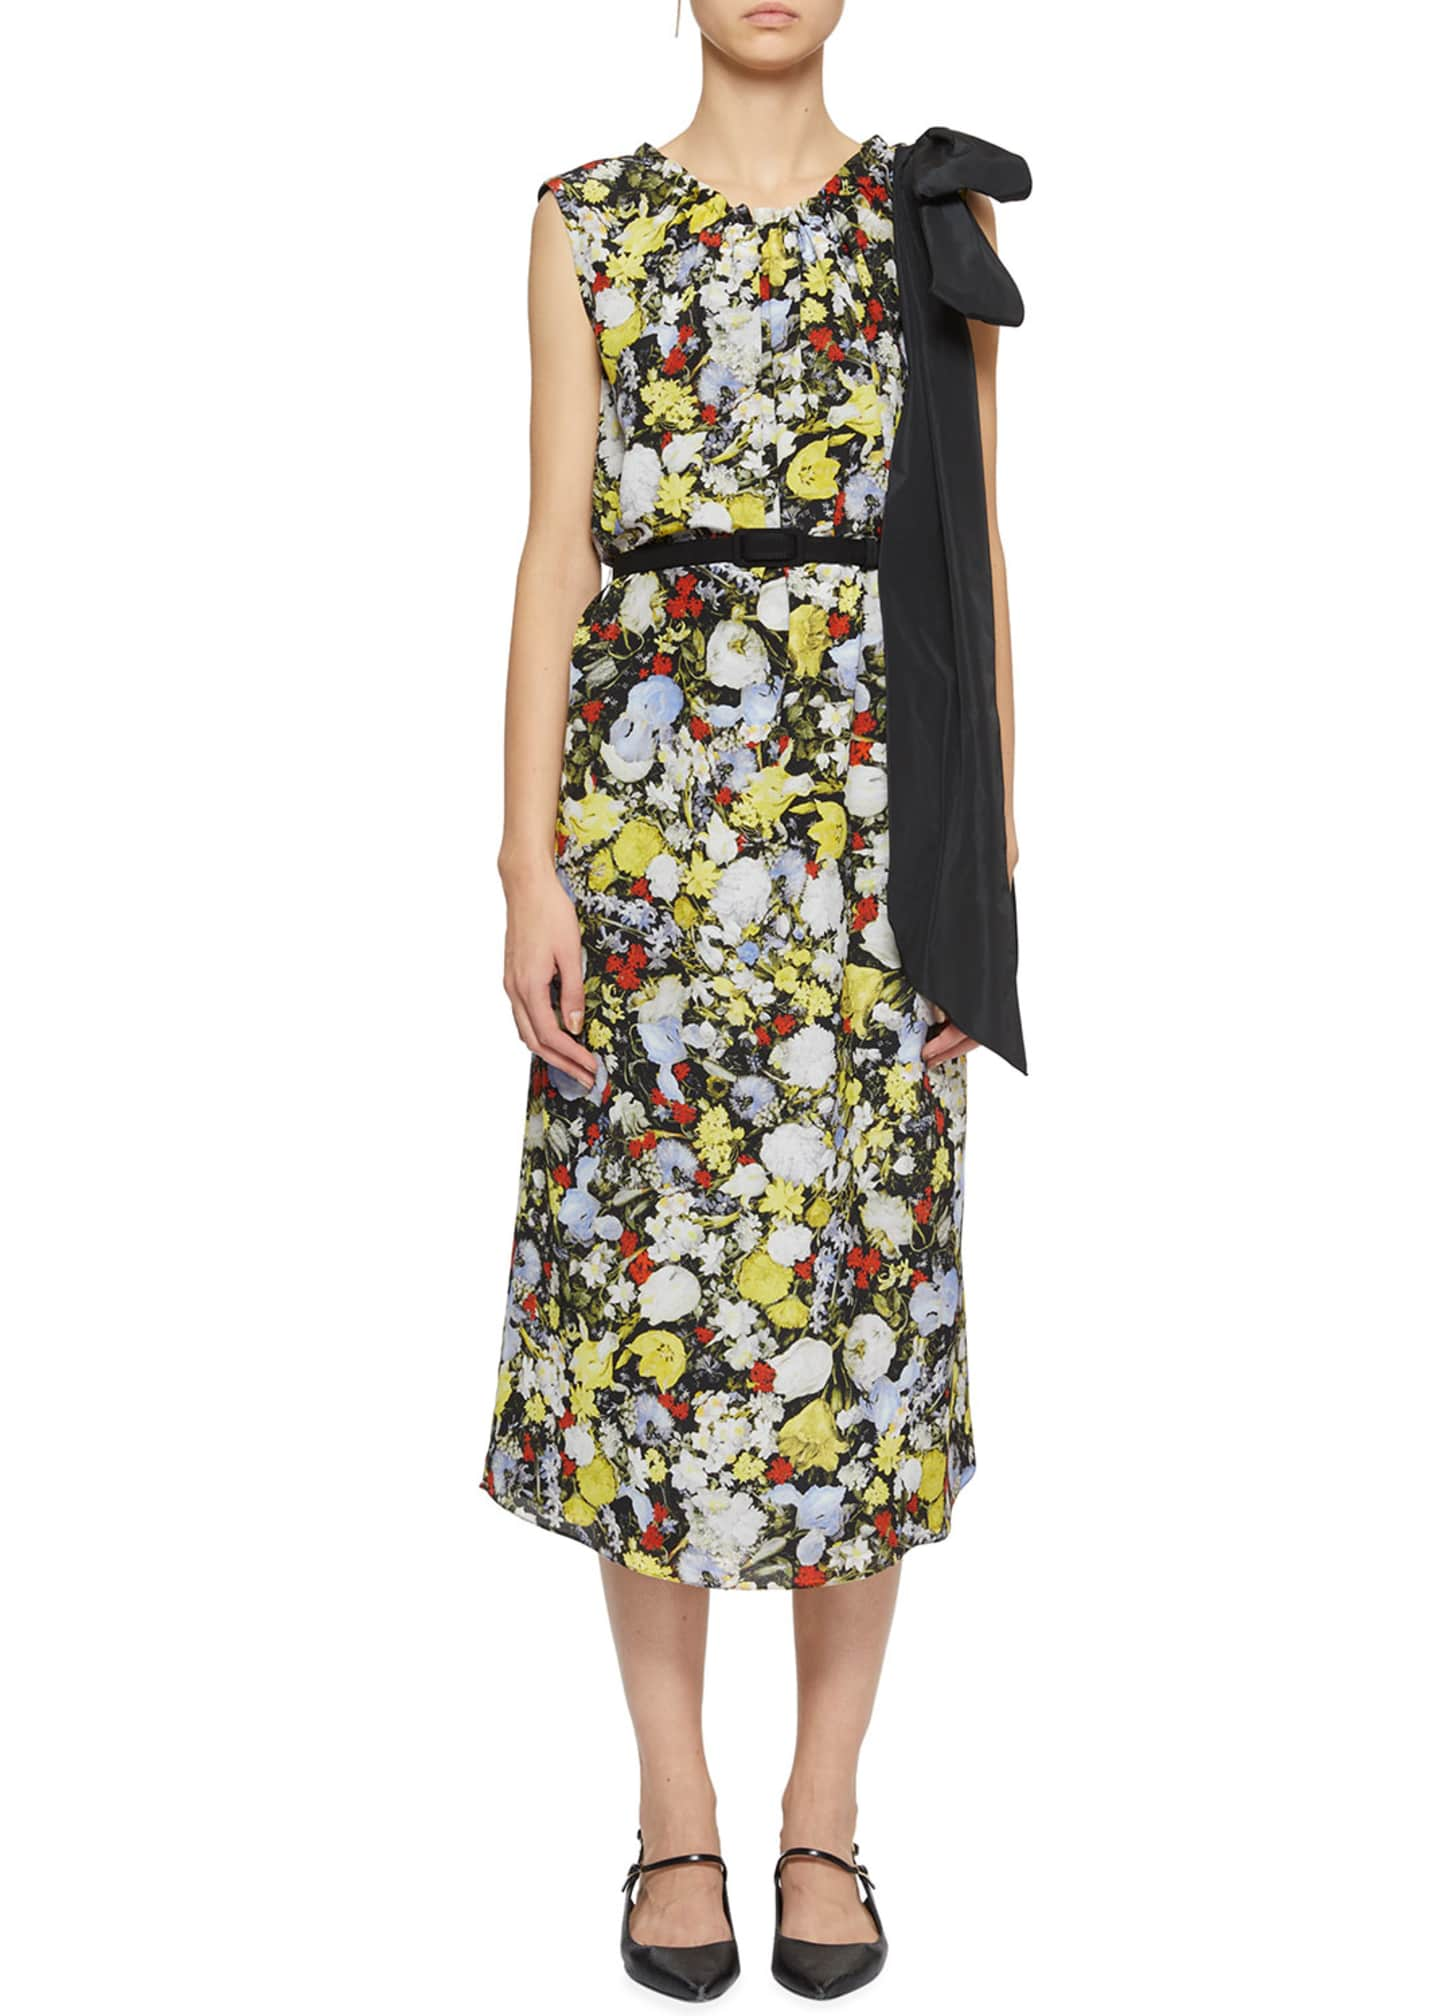 Erdem Breena Bow-Shoulder Floral Midi Dress